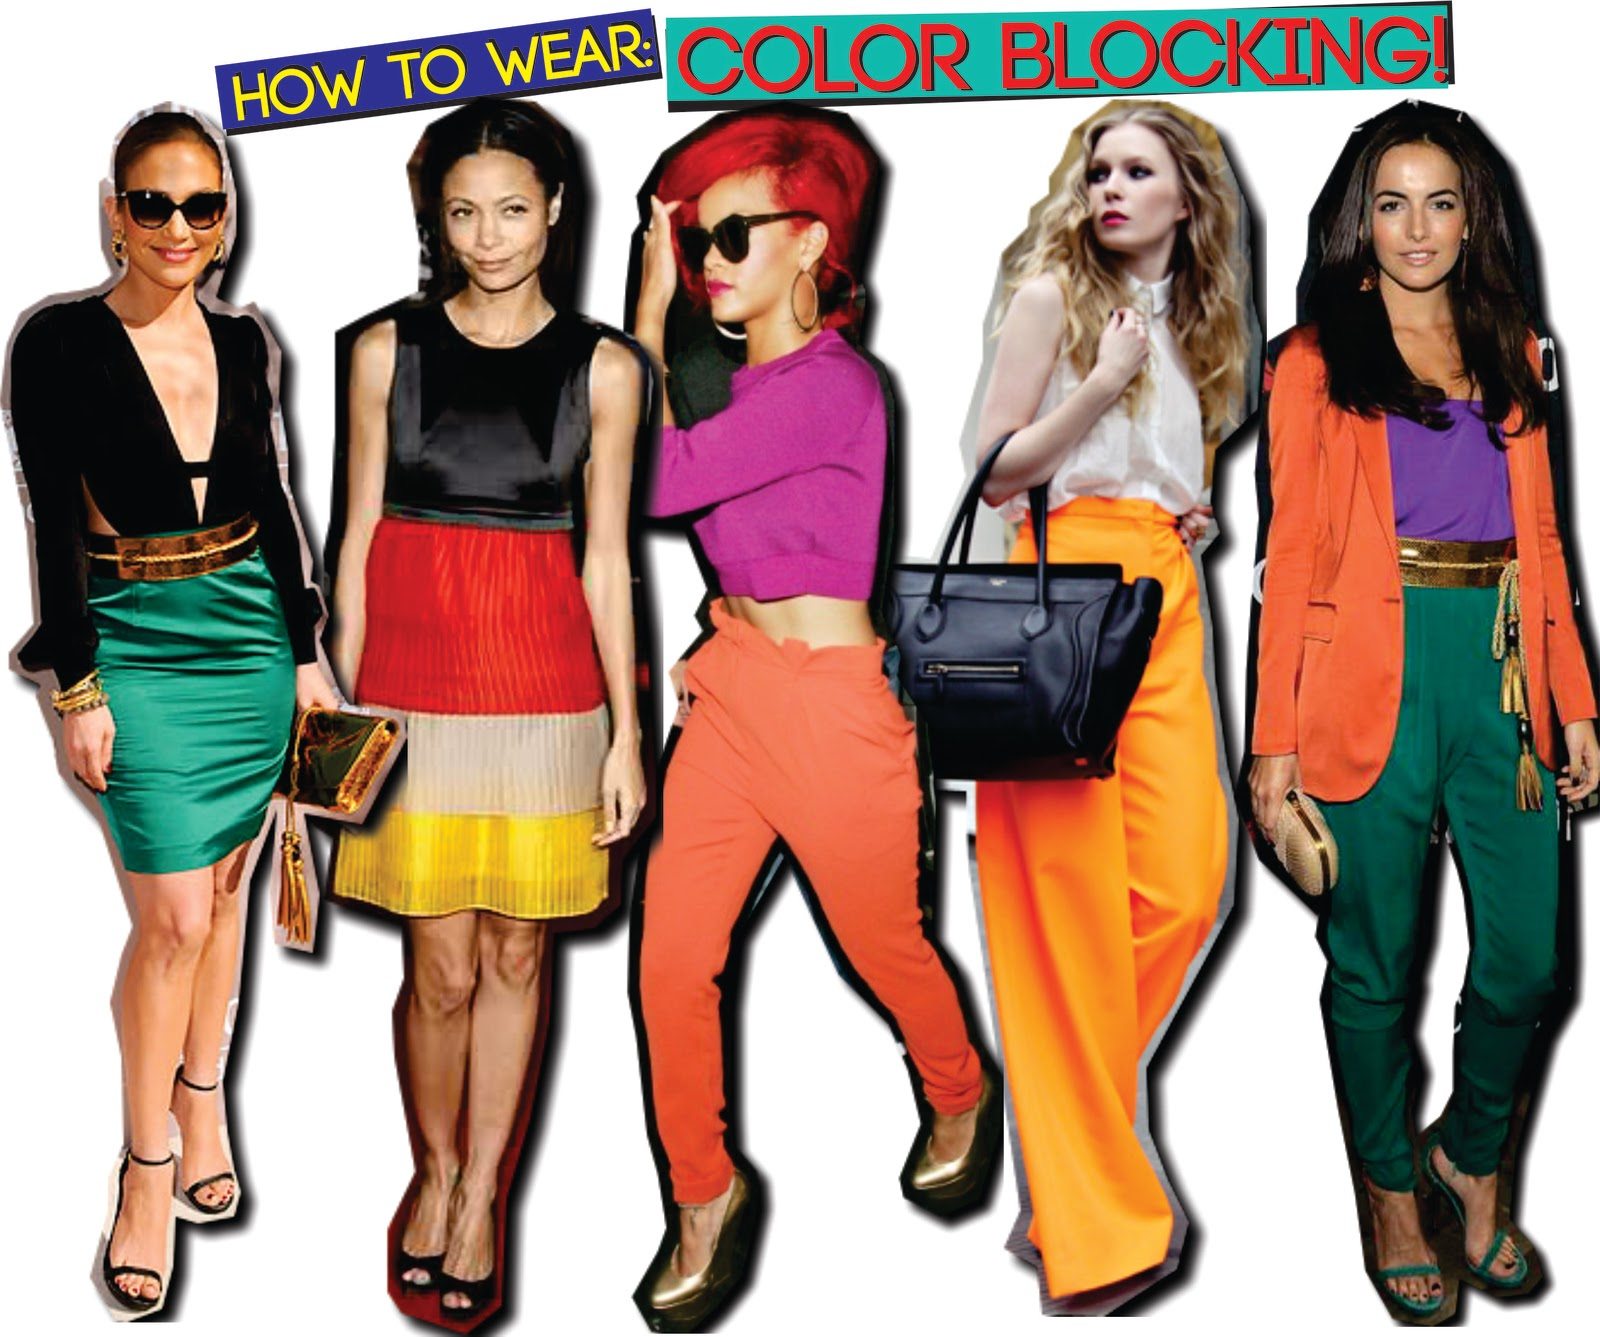 Candy Cake12 Fashioning The Color Blocking Trend